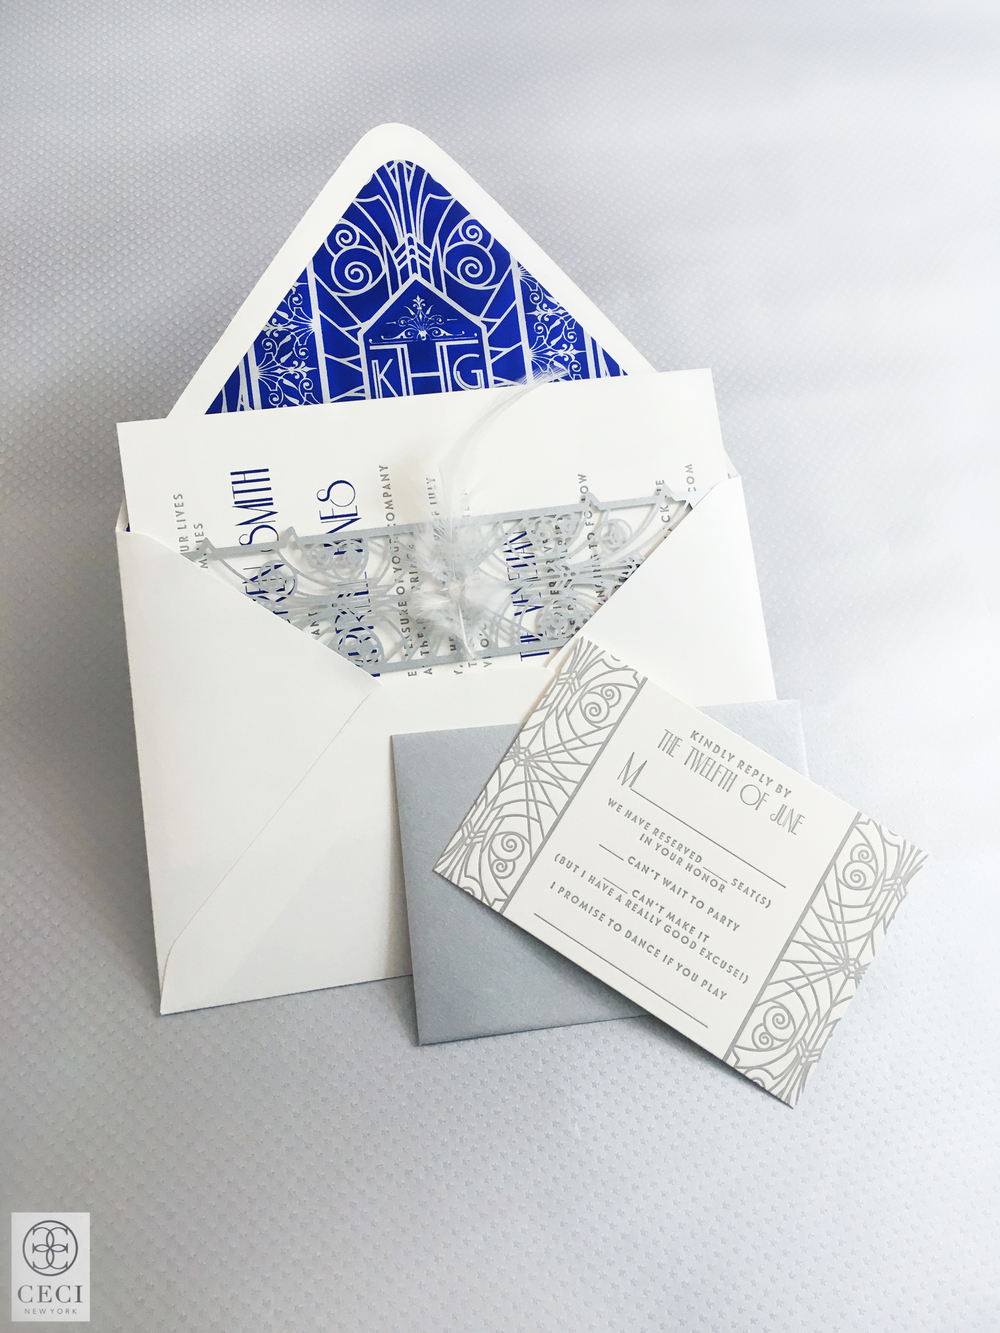 Ceci_New_York_New_Jersey_Invitations_Wedding_New_York_Elegance_Silver_Blue_Letterpress_Deco_Classic_Foil_Stamping_Custom_Couture_Personalized-72.jpg